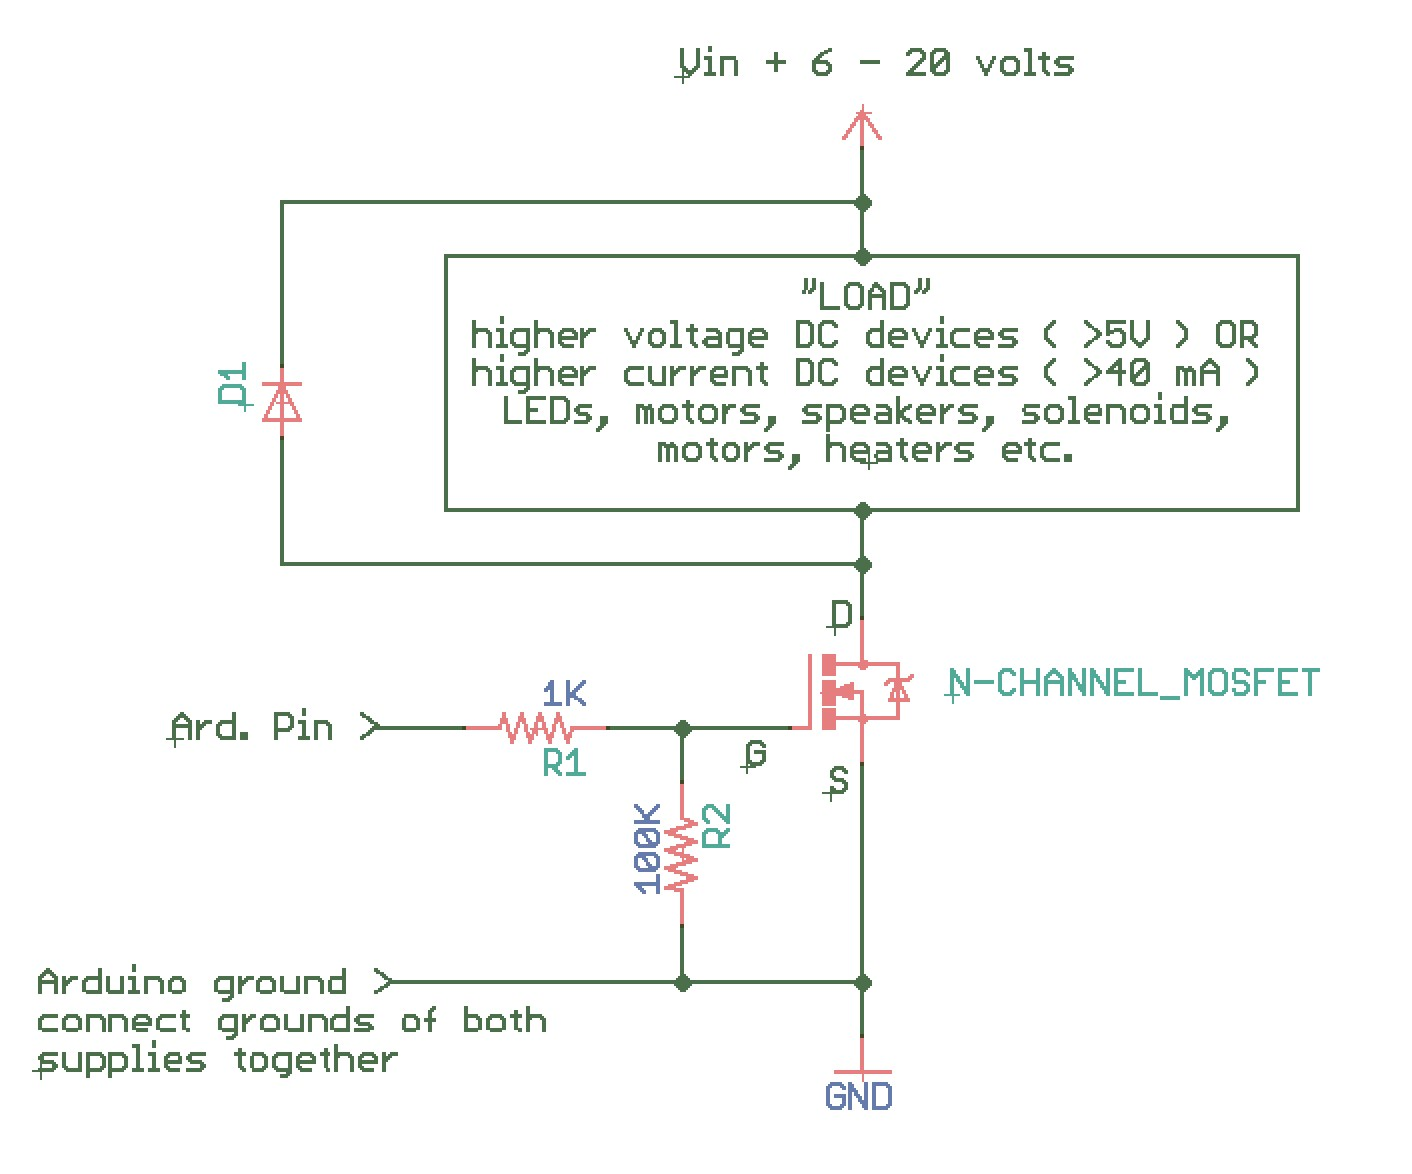 N channel MOSFET wired as a high current or high voltage switch R2 is a pulldown resistor to keep the switch off if there is no input it should have a